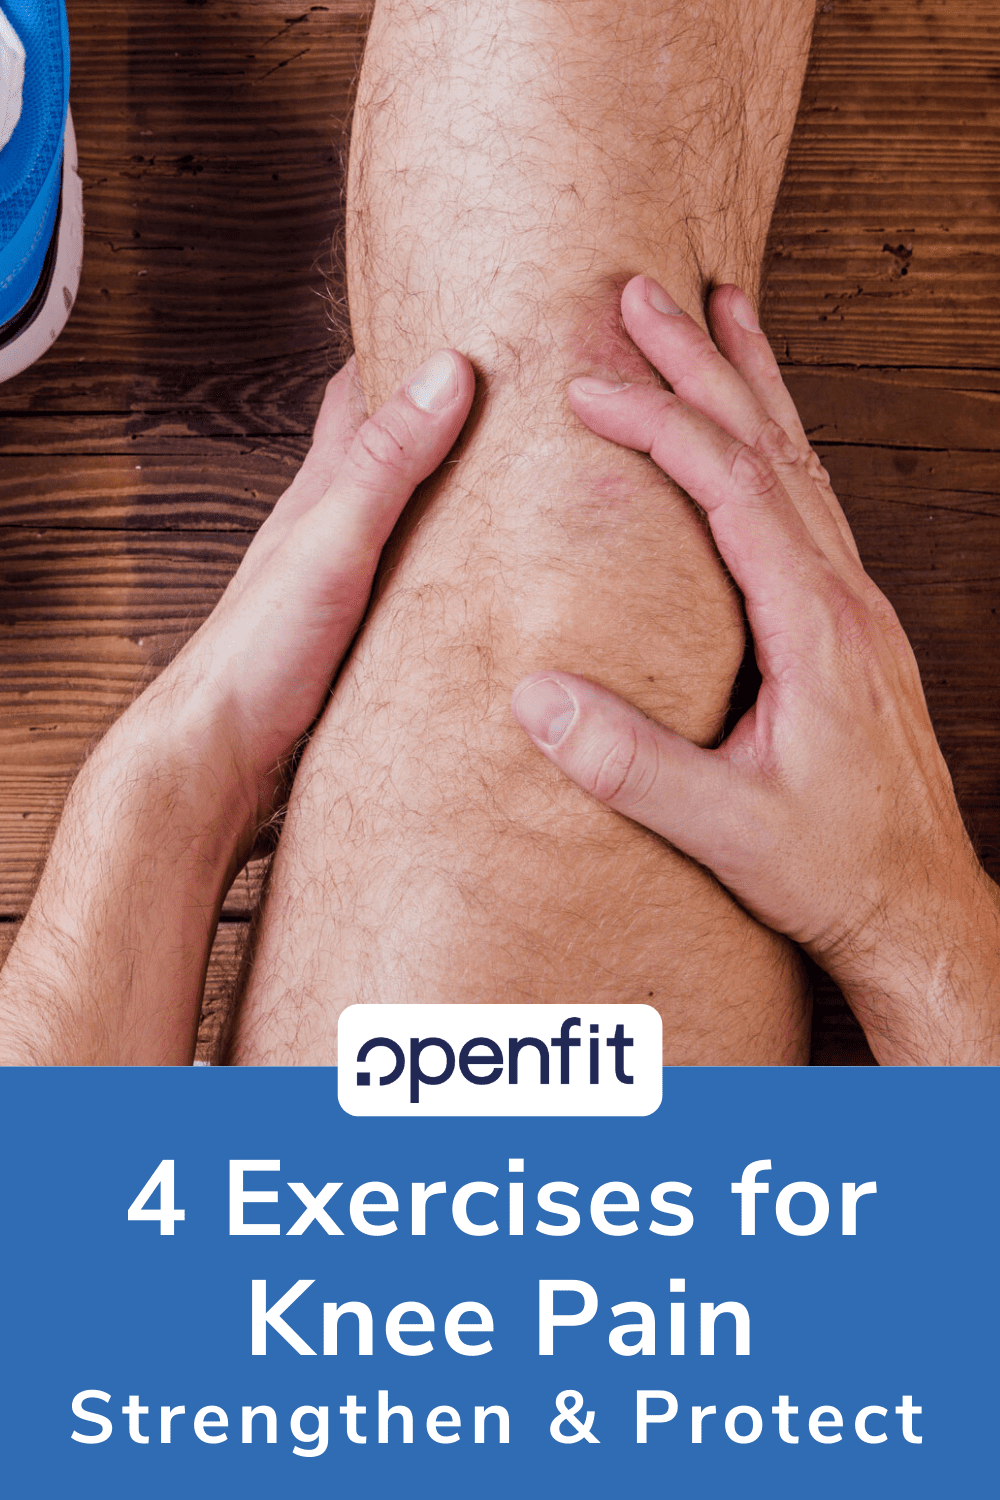 exercises for knee pain - pin image